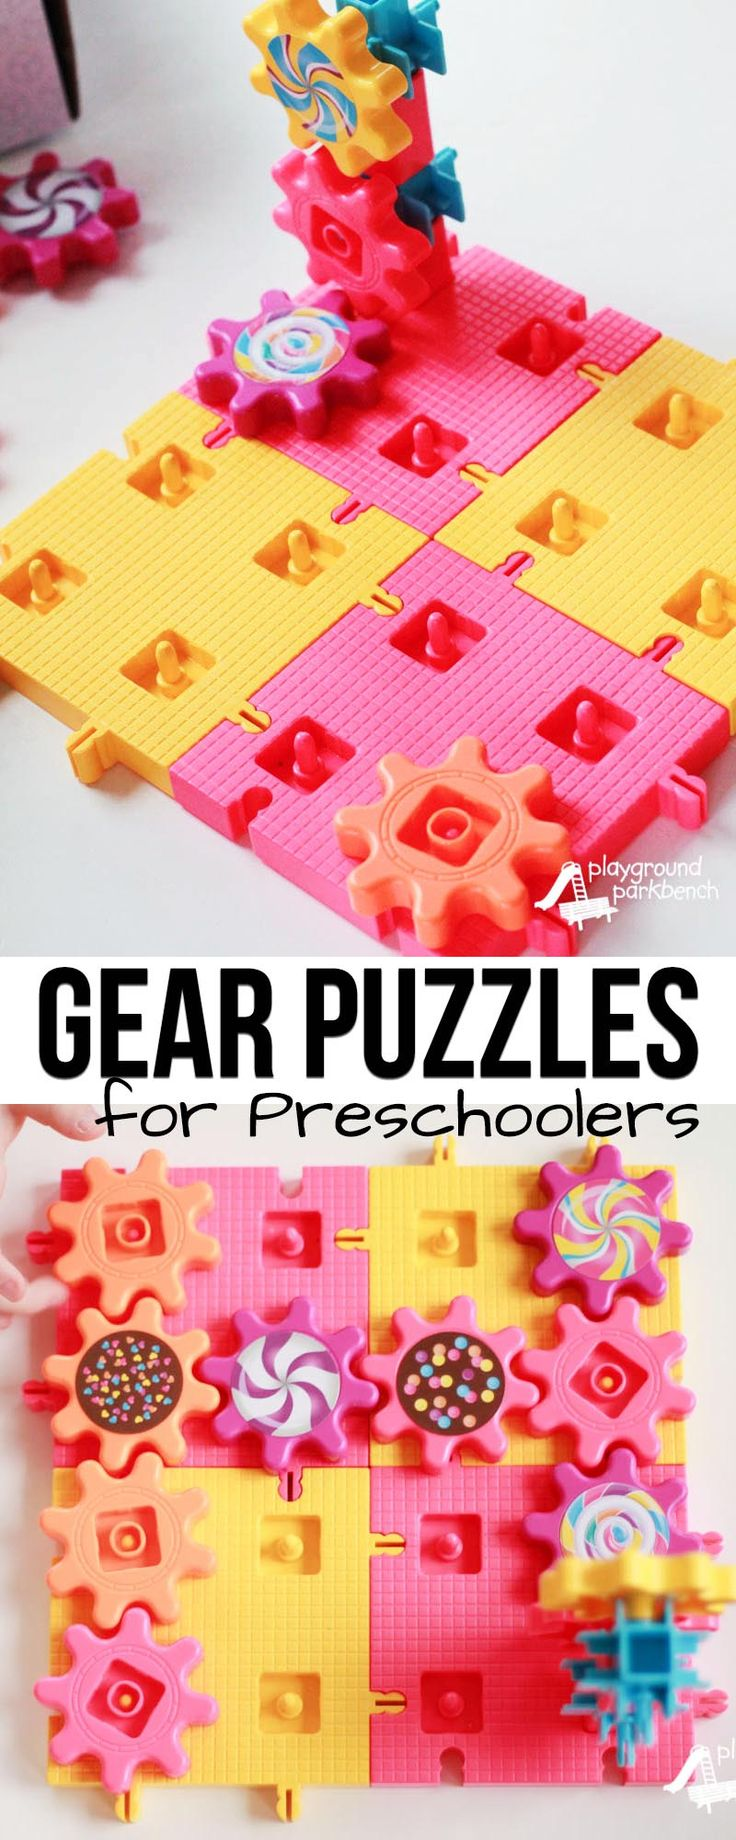 30 Simple Machine Projects for Kids | 123 Homeschool 4 Me